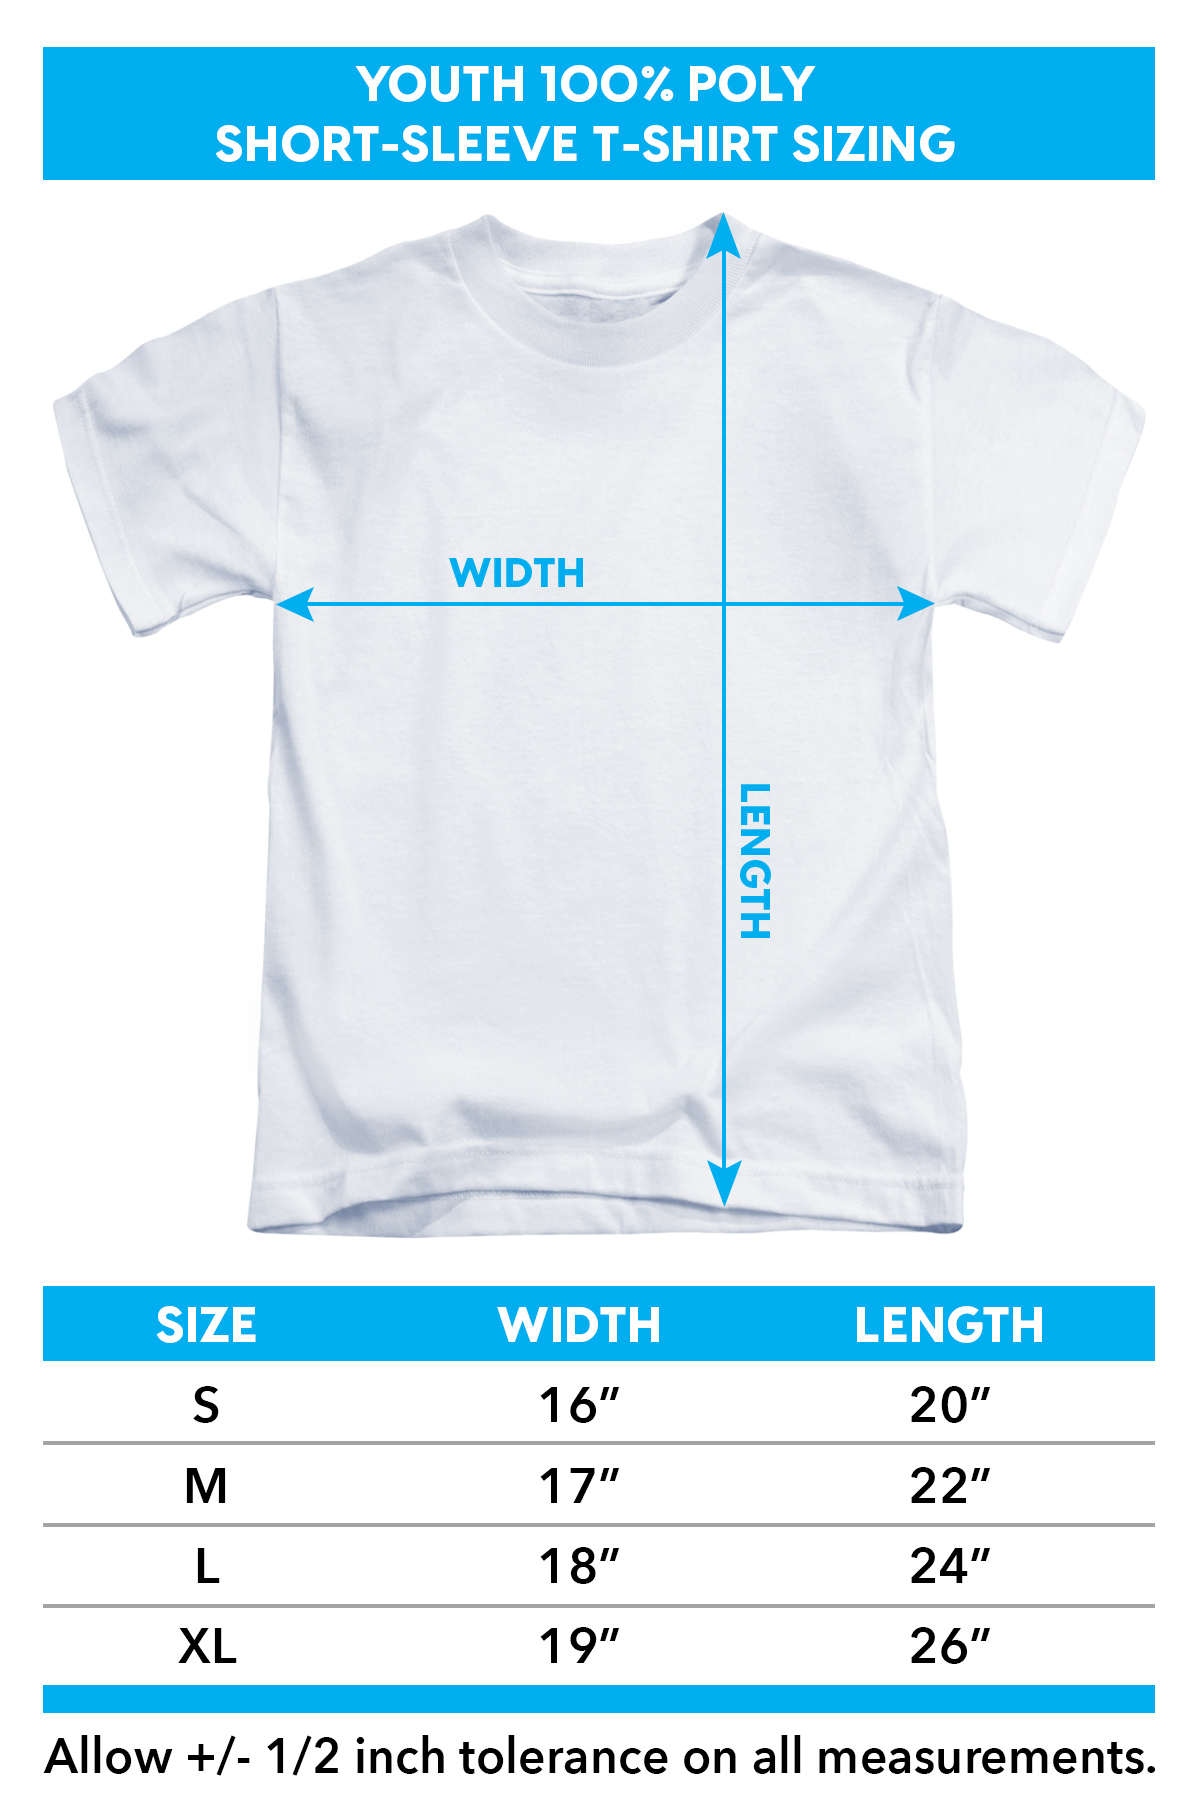 Sizing Chart for Atari T-Shirt - Sublimated Asteroids Arcade